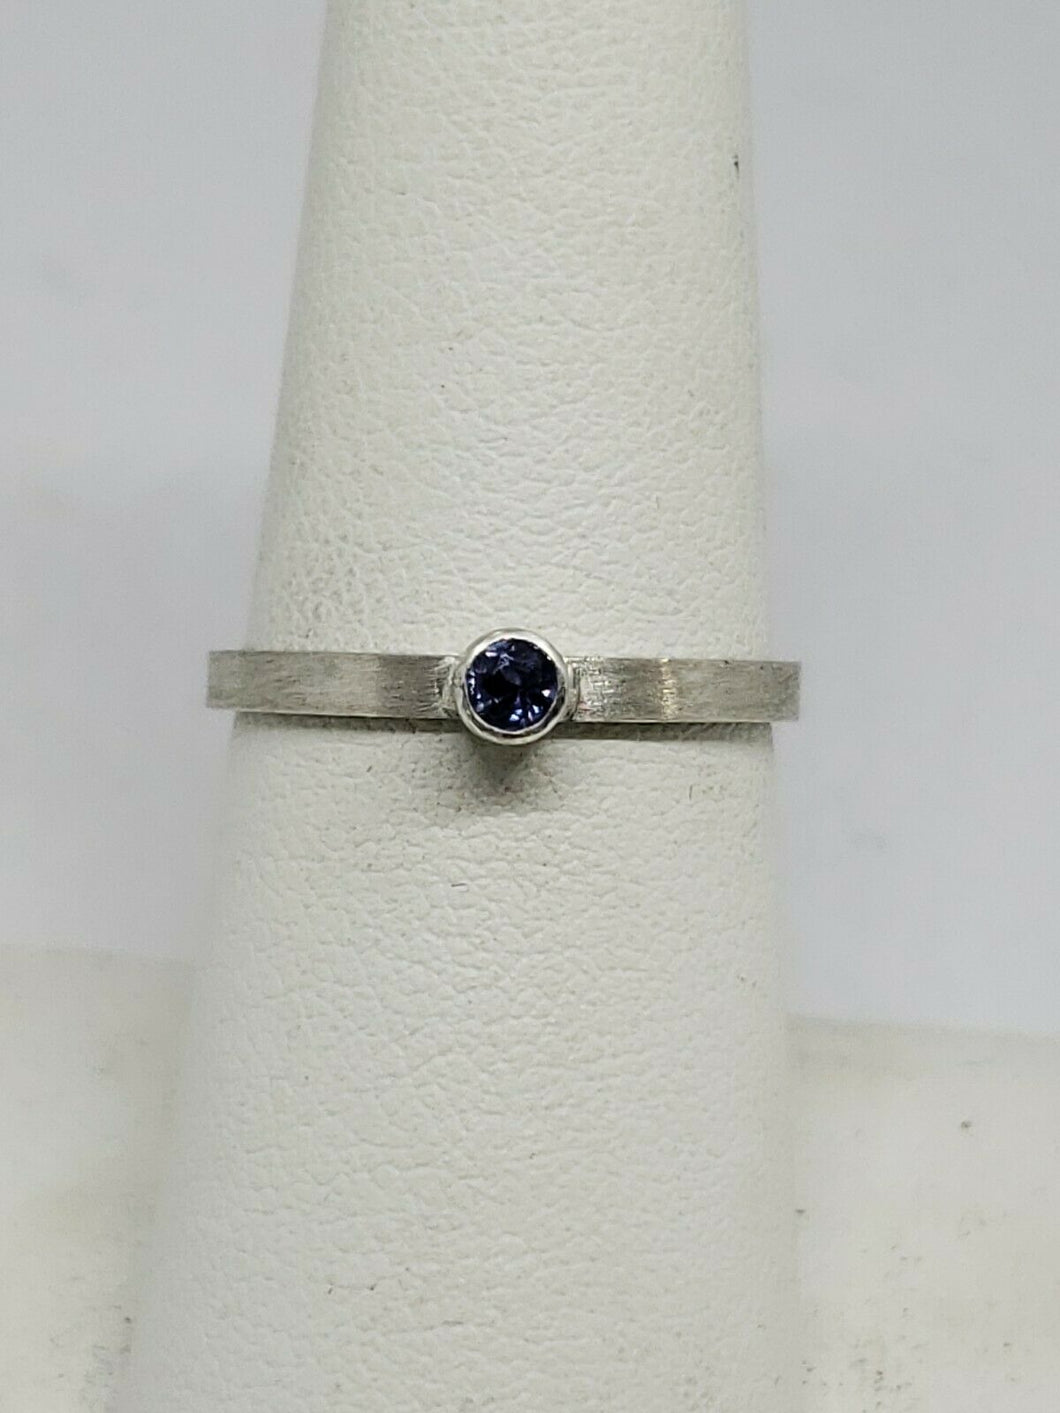 Handmade Tanzanite Sterling Silver Stacker Ring Brushed Finish Size 6 3/4